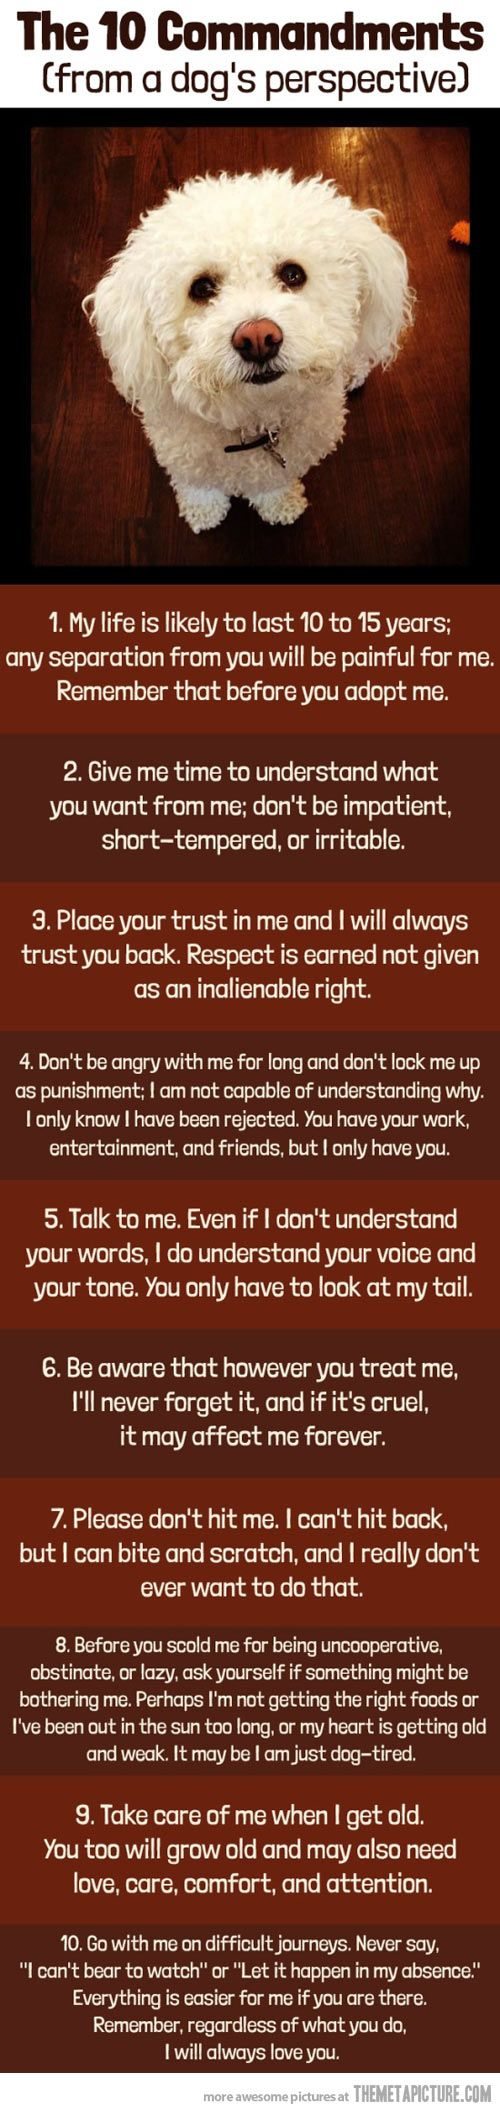 cool-commandments-dog-perspective-rules